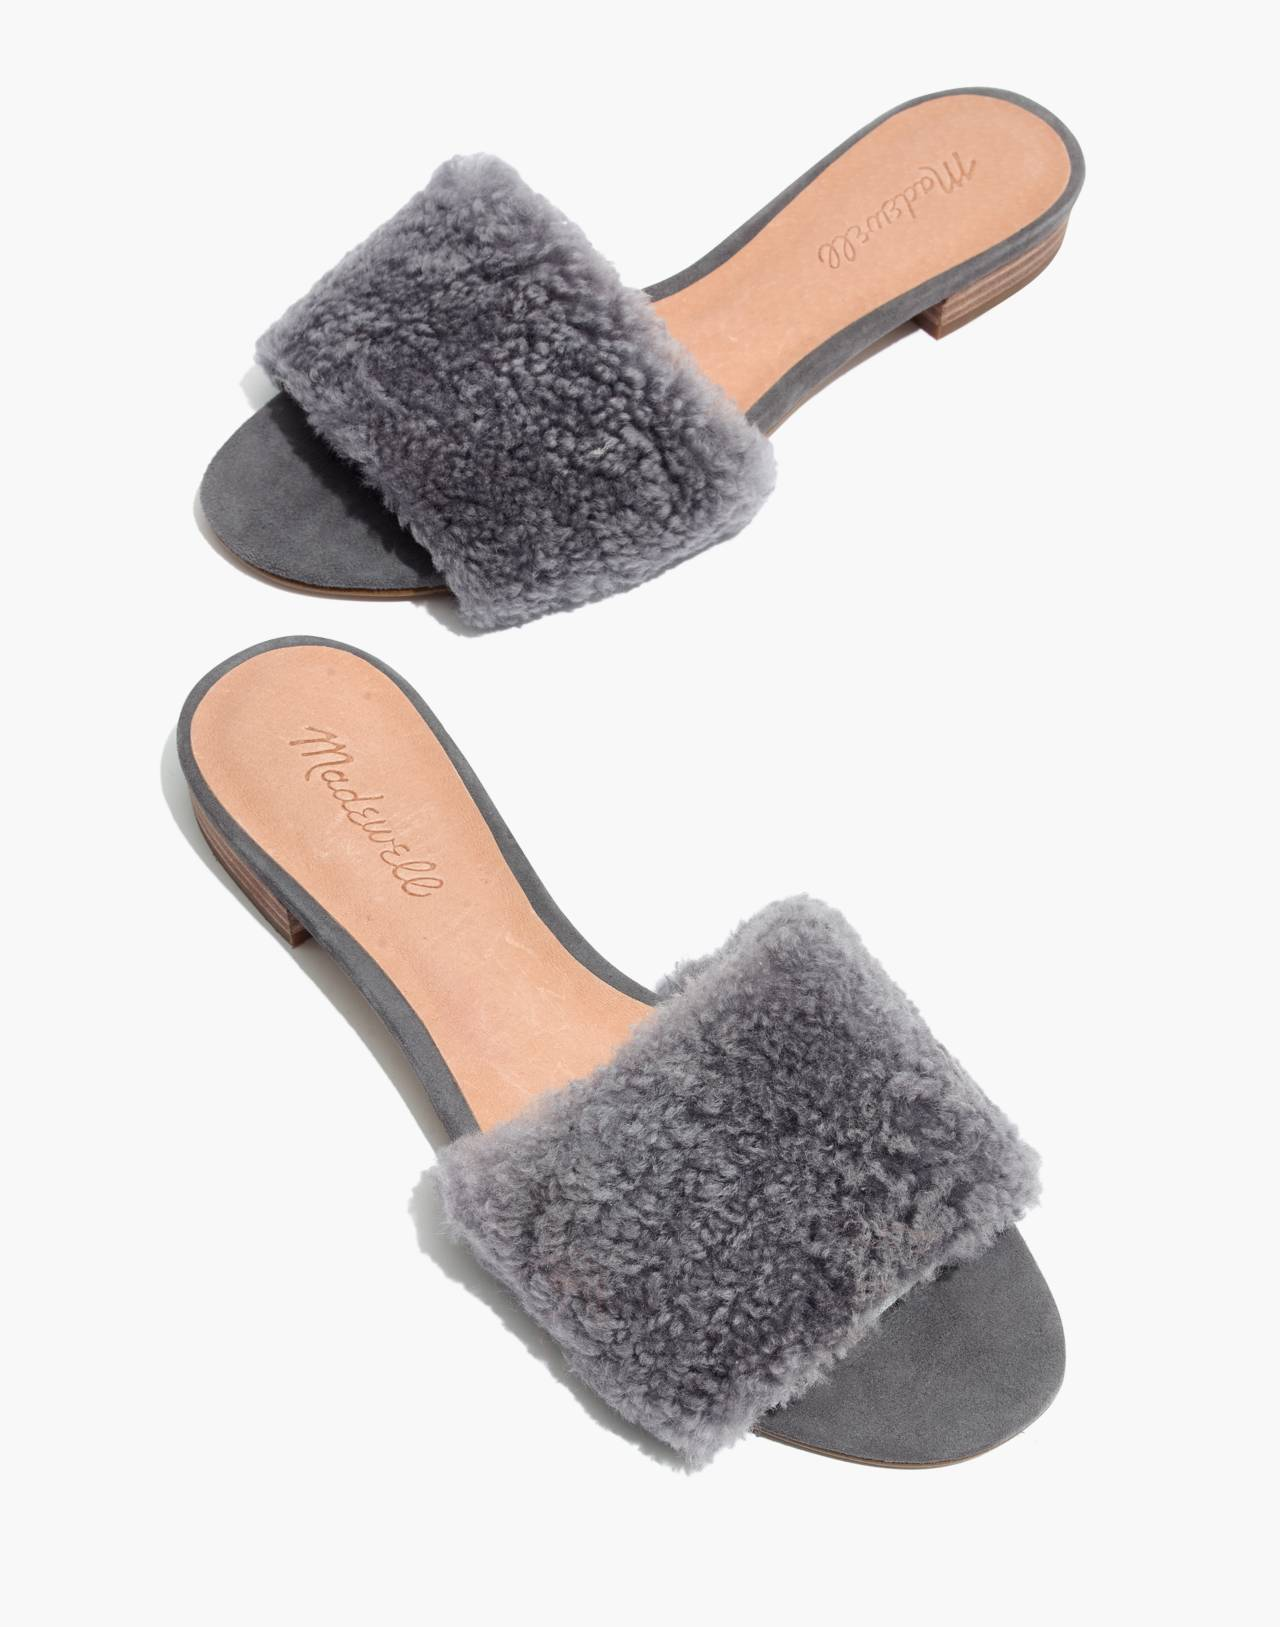 The Jackson Shearling Slide Sandal in stonewall image 1